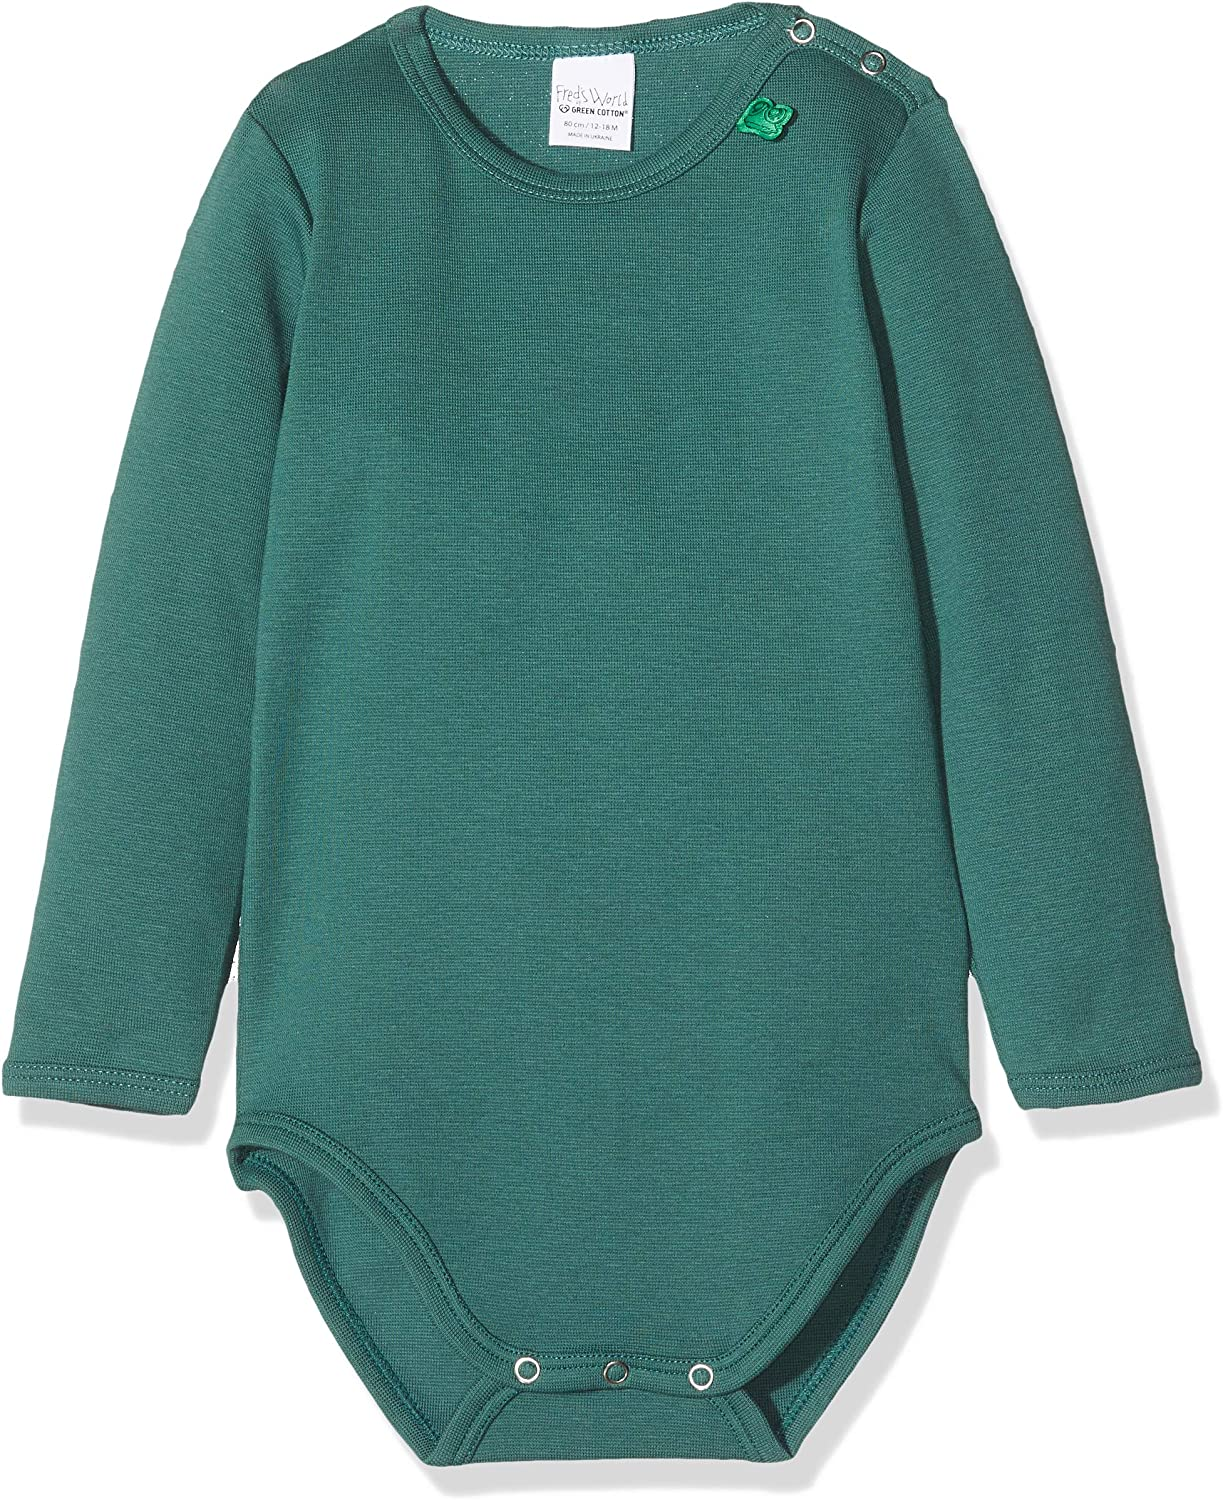 Fred's World by Green Cotton Star Solid Body Camiseta para Bebés